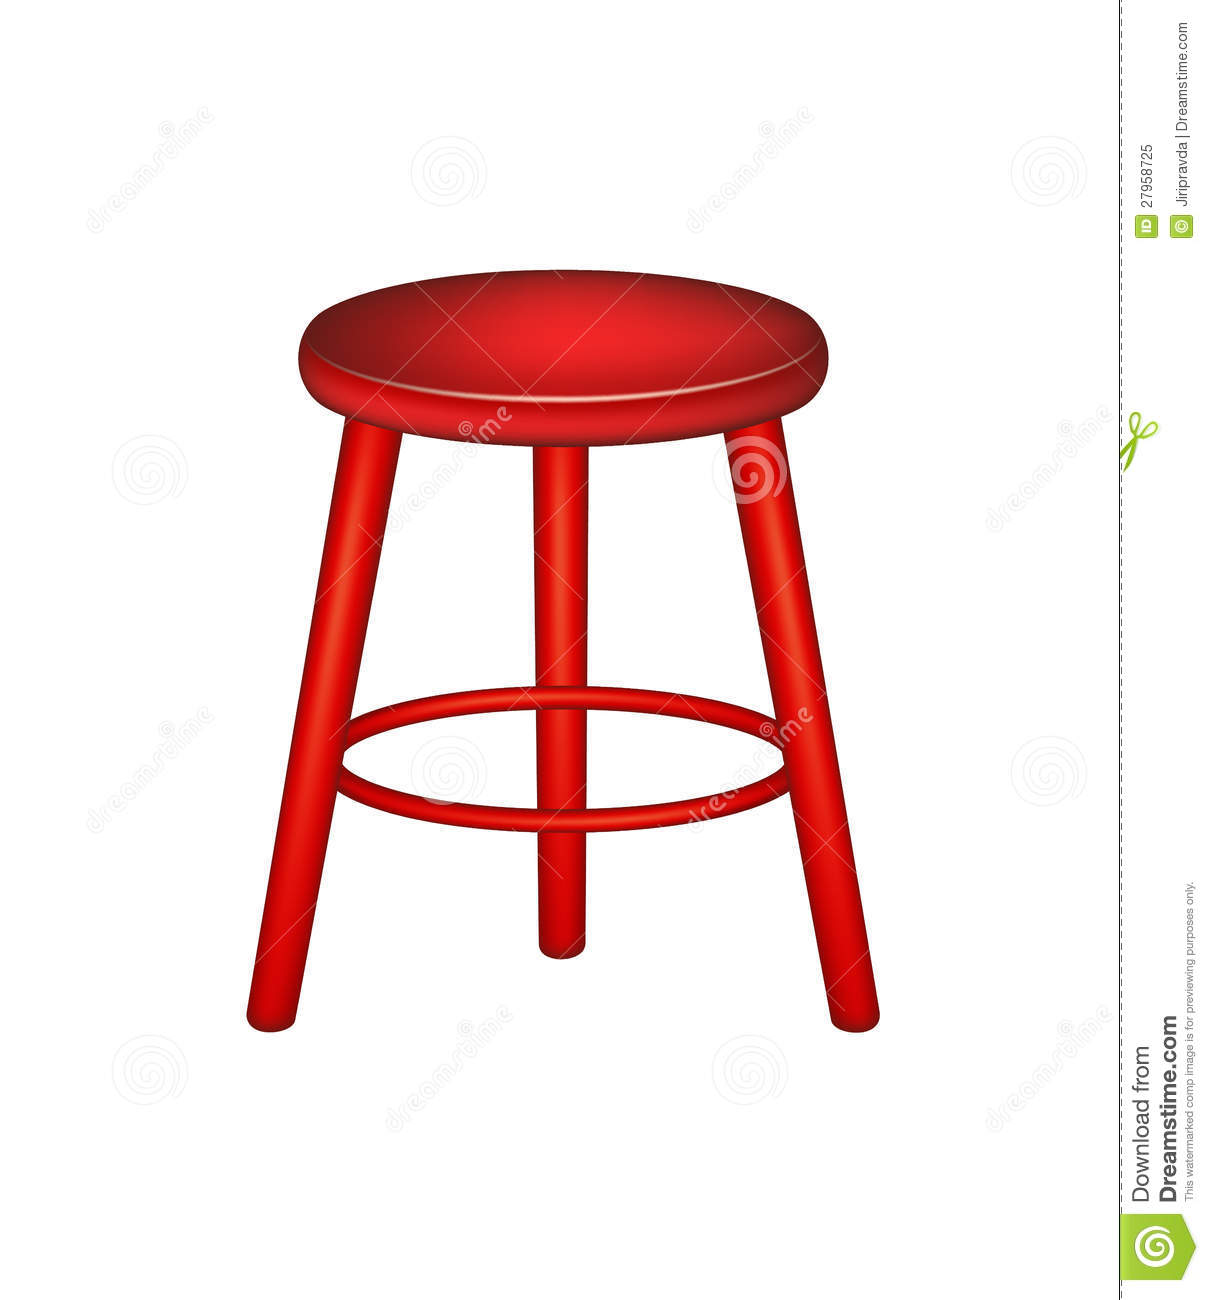 retro stool in red design stock vector illustration of cafeteria clipart black and white cafeteria clip art stay in your space